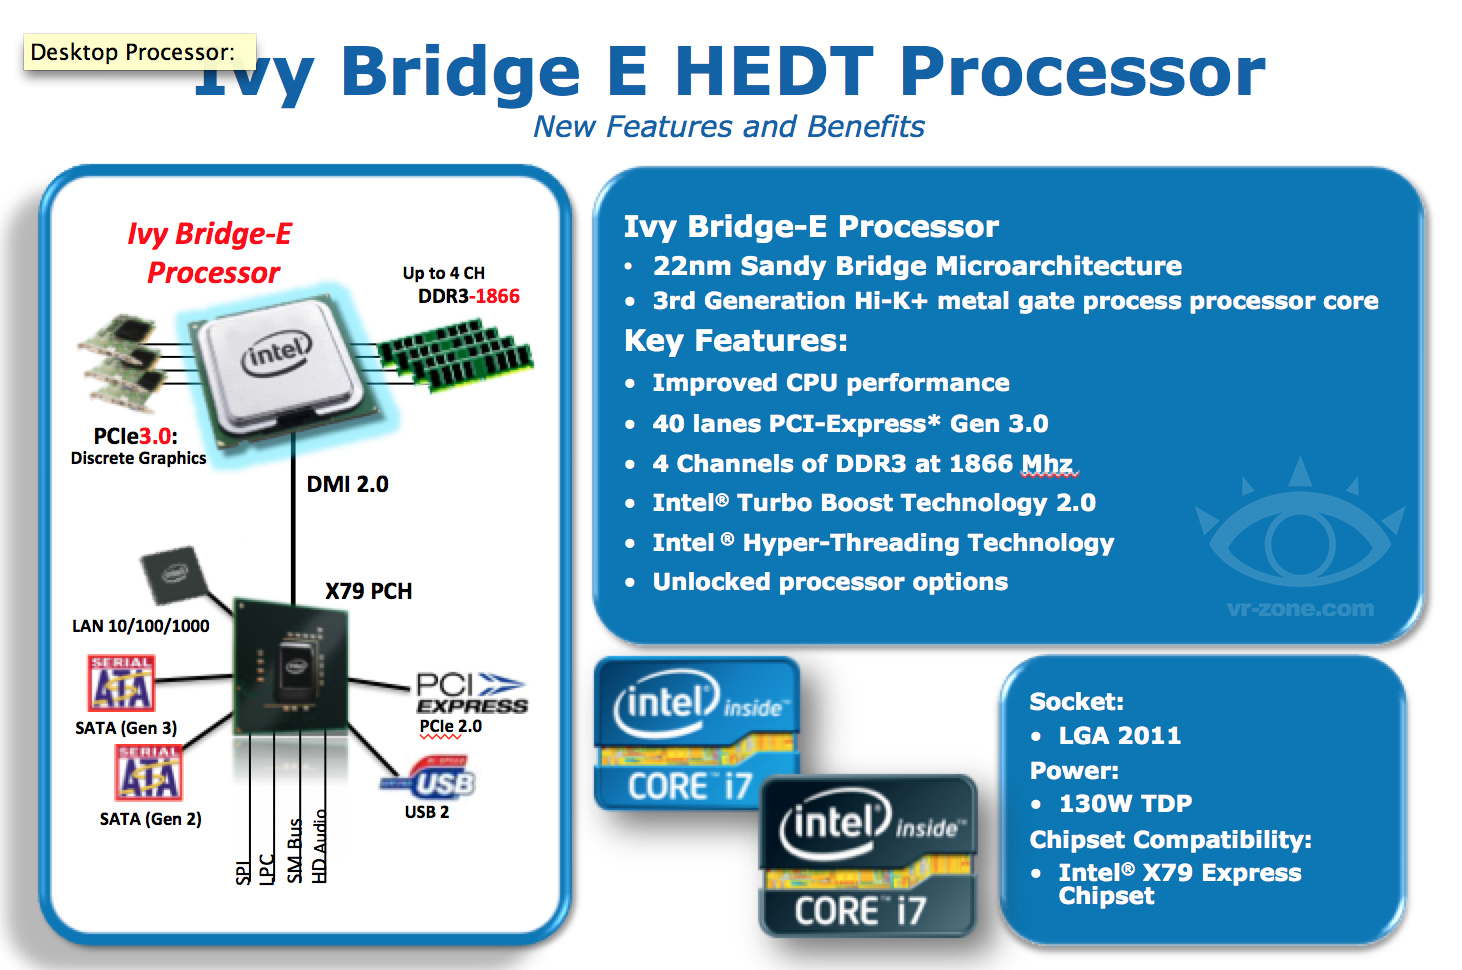 Intel Ivy Bridge-E con DDR3-1866 e 40 linee PCIe 3.0